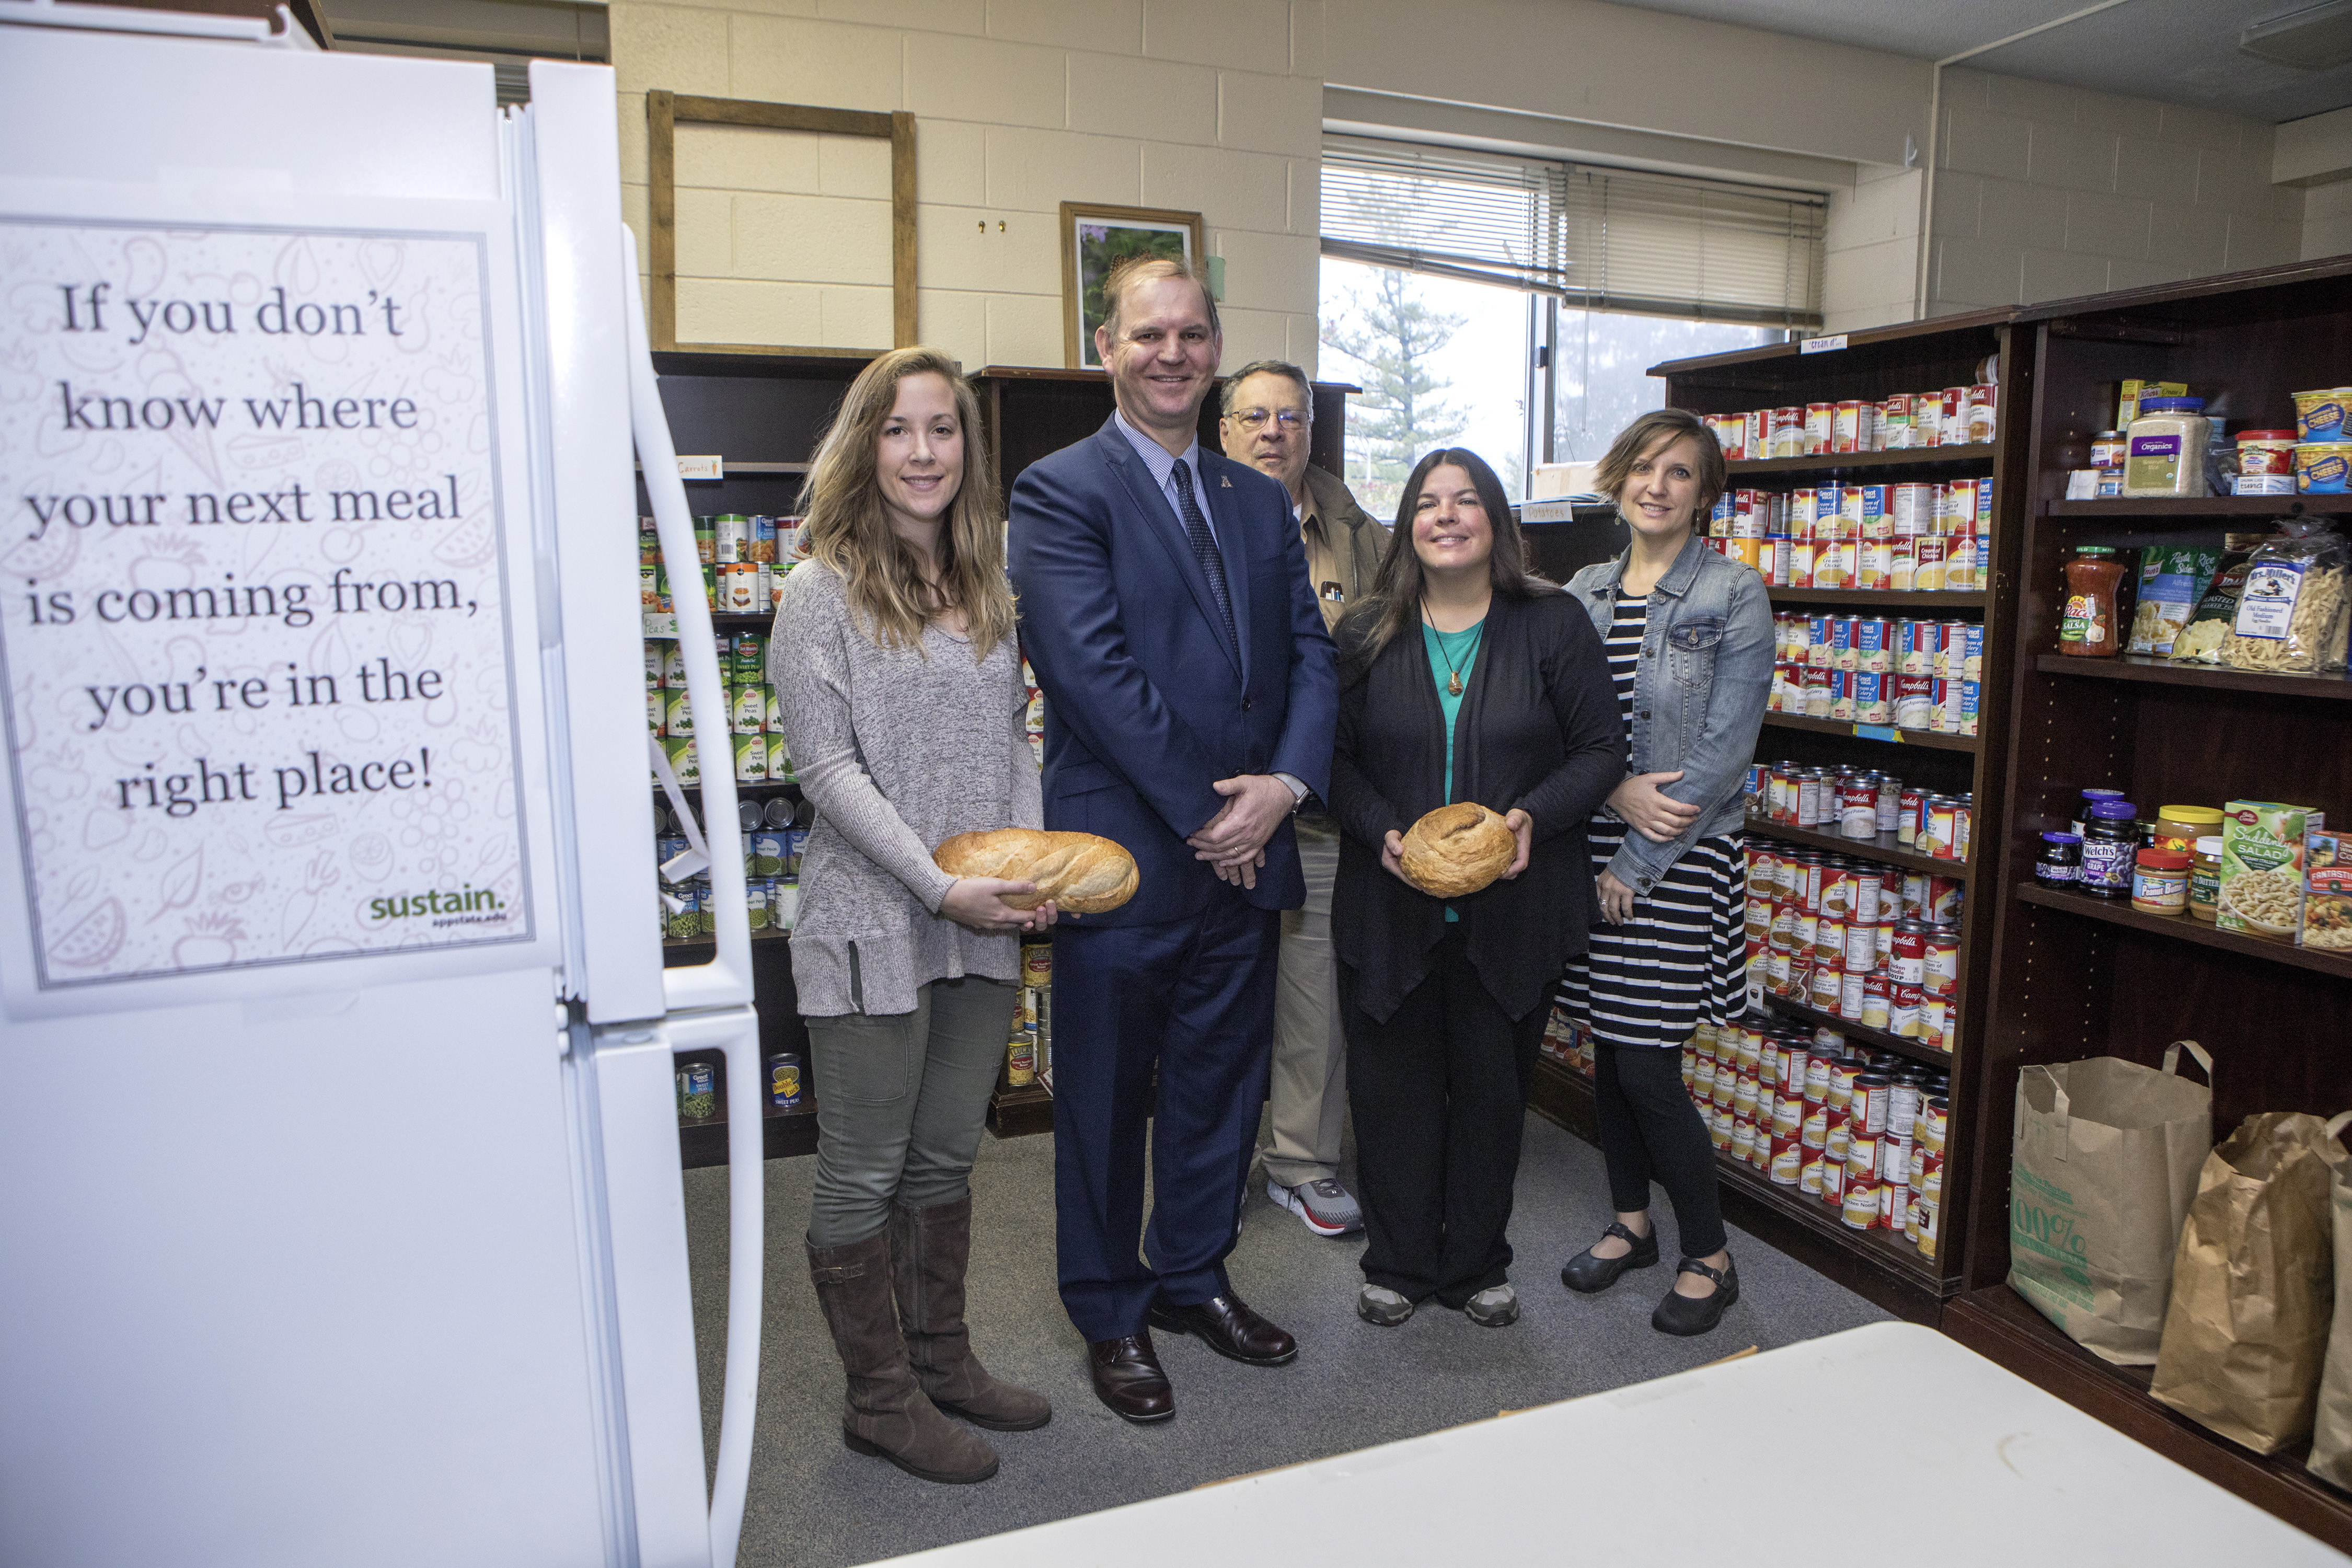 Best ideas about Food Pantry Open Today . Save or Pin The Appalachian food pantry — an open door that swings Now.